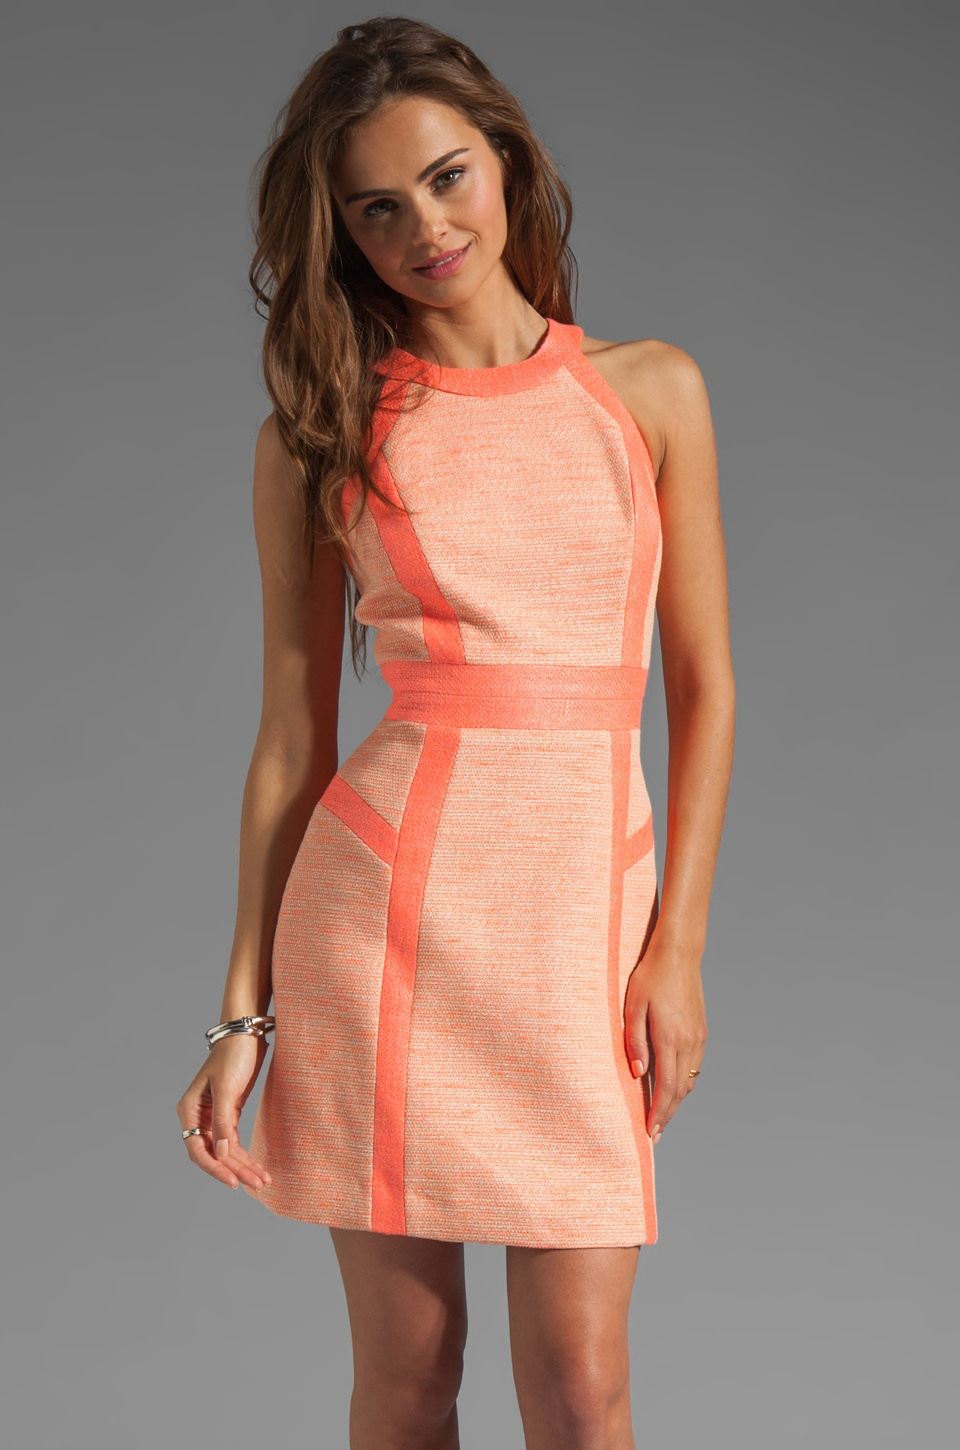 MILLY Neon Couture Cotton Tweed Piped Strappy Dress in Multi